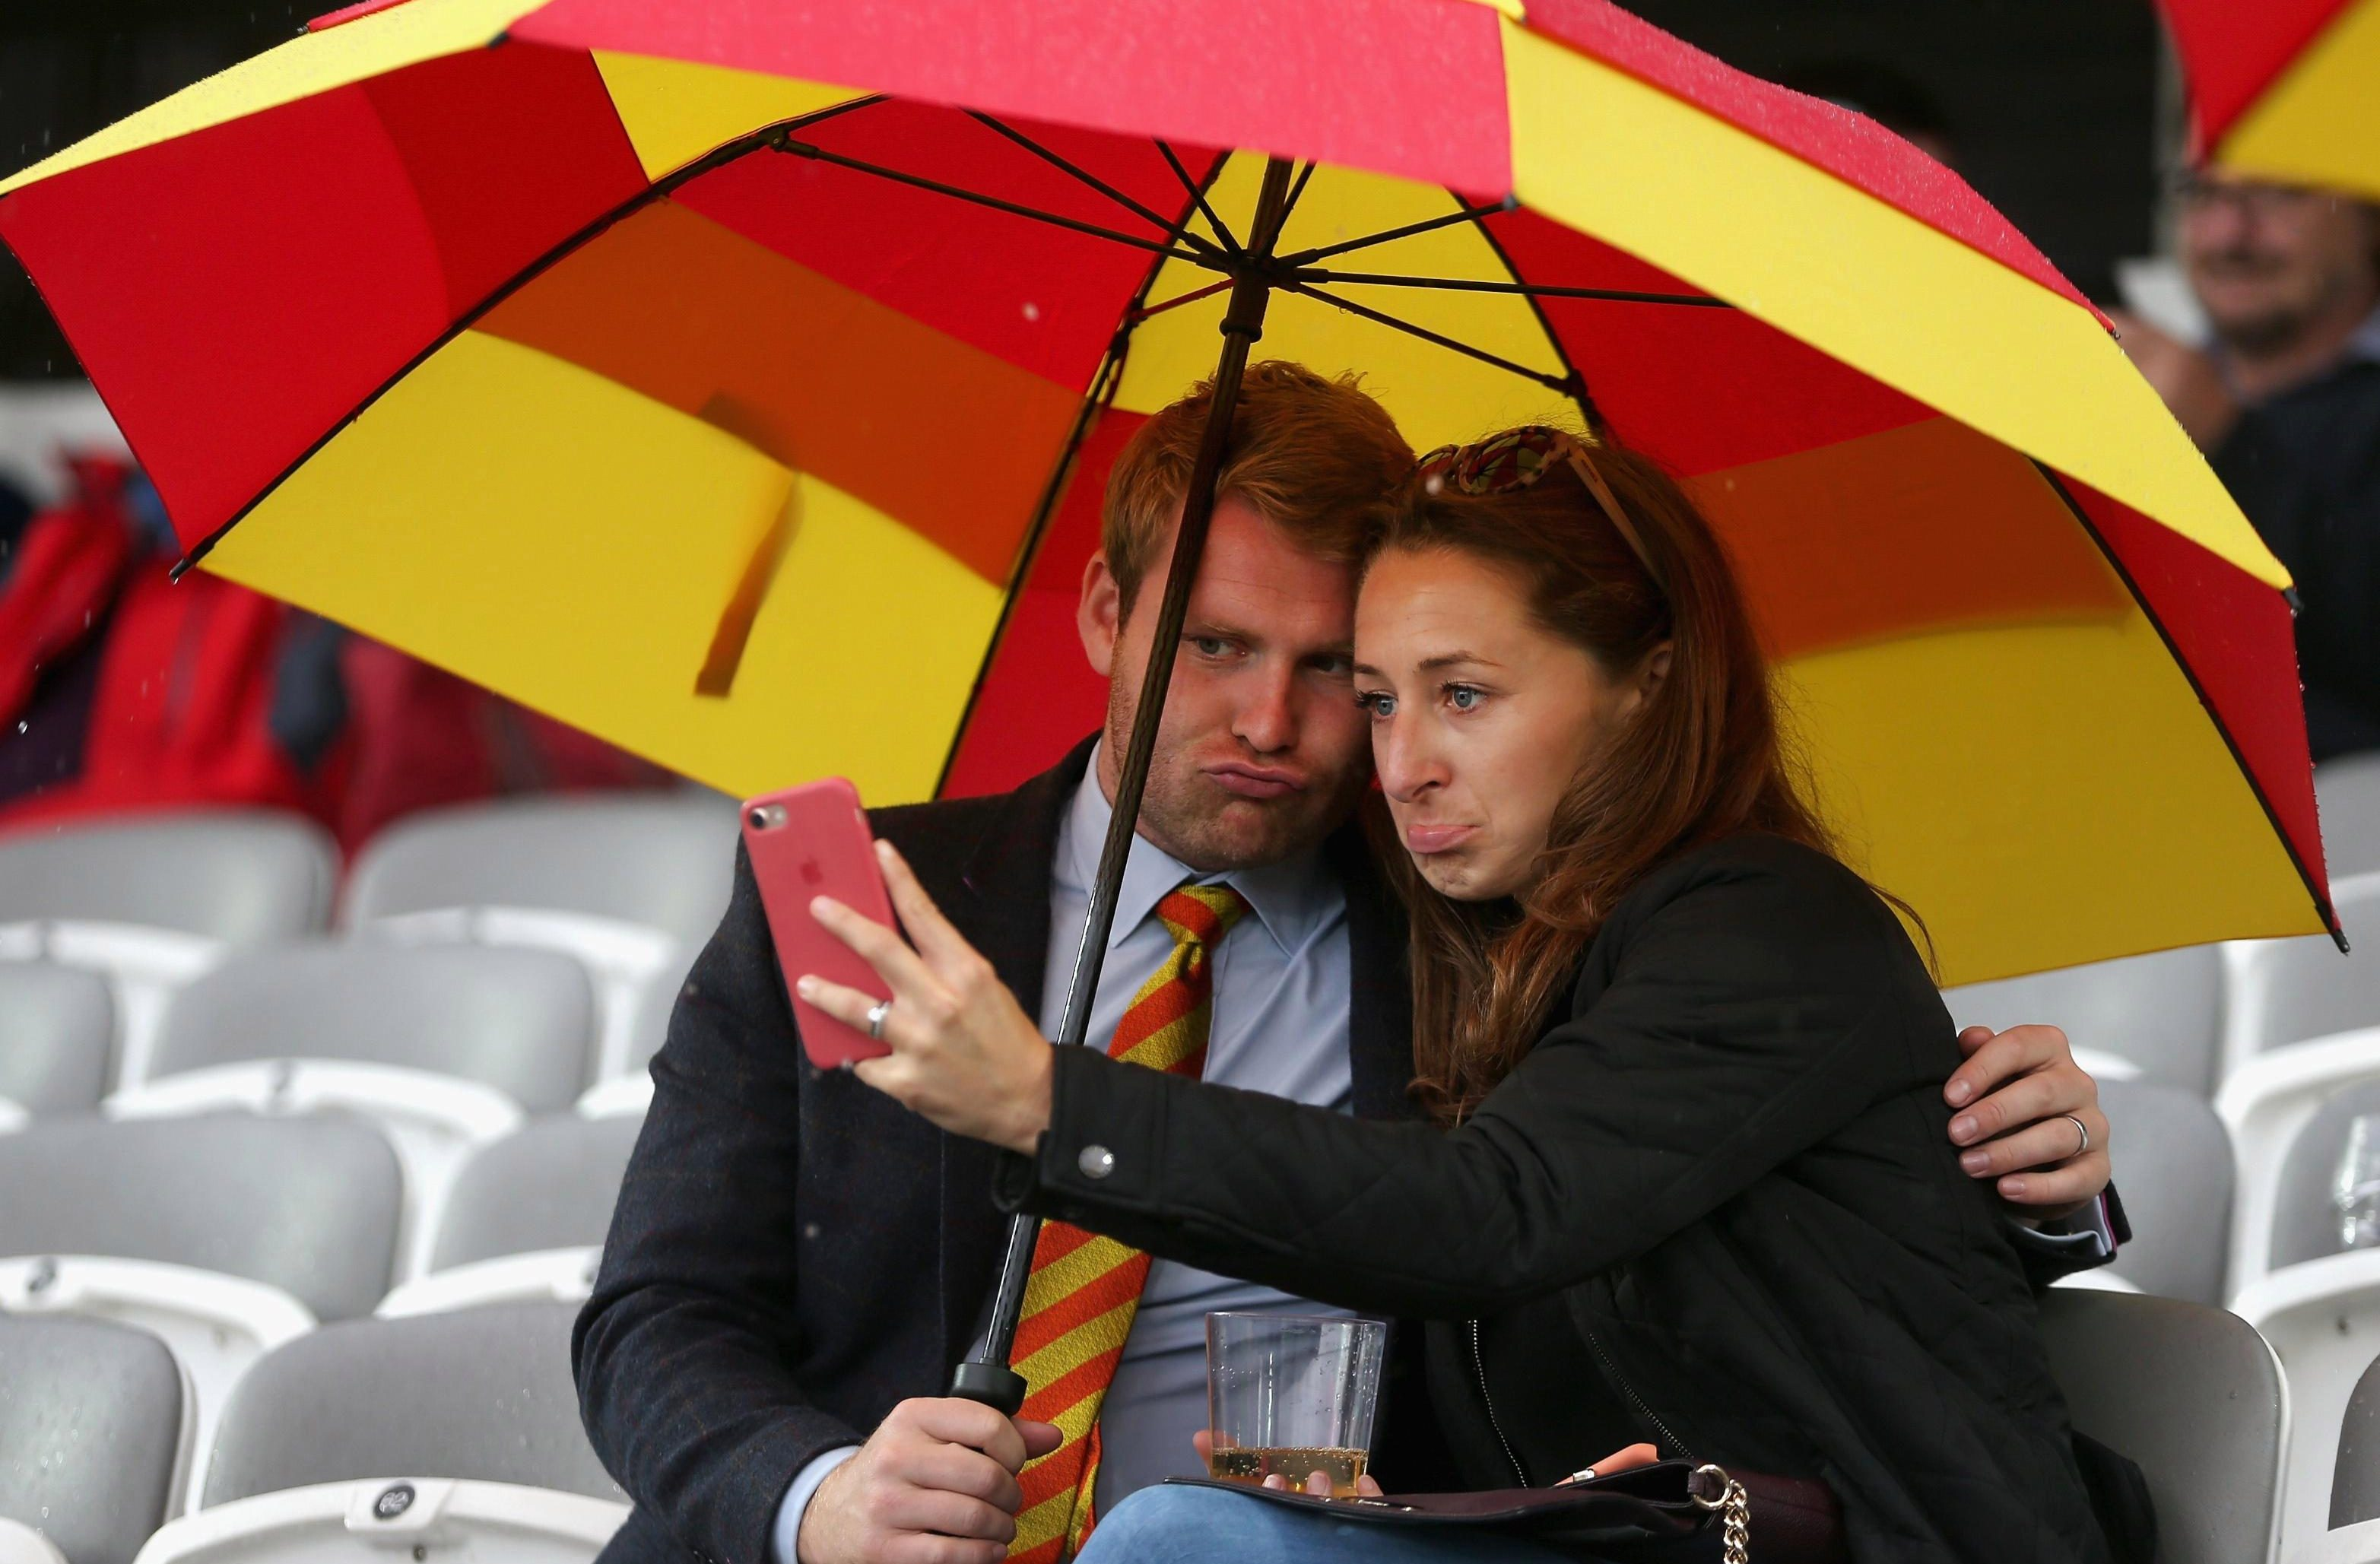 Spectators were frustrated by the weather on Friday